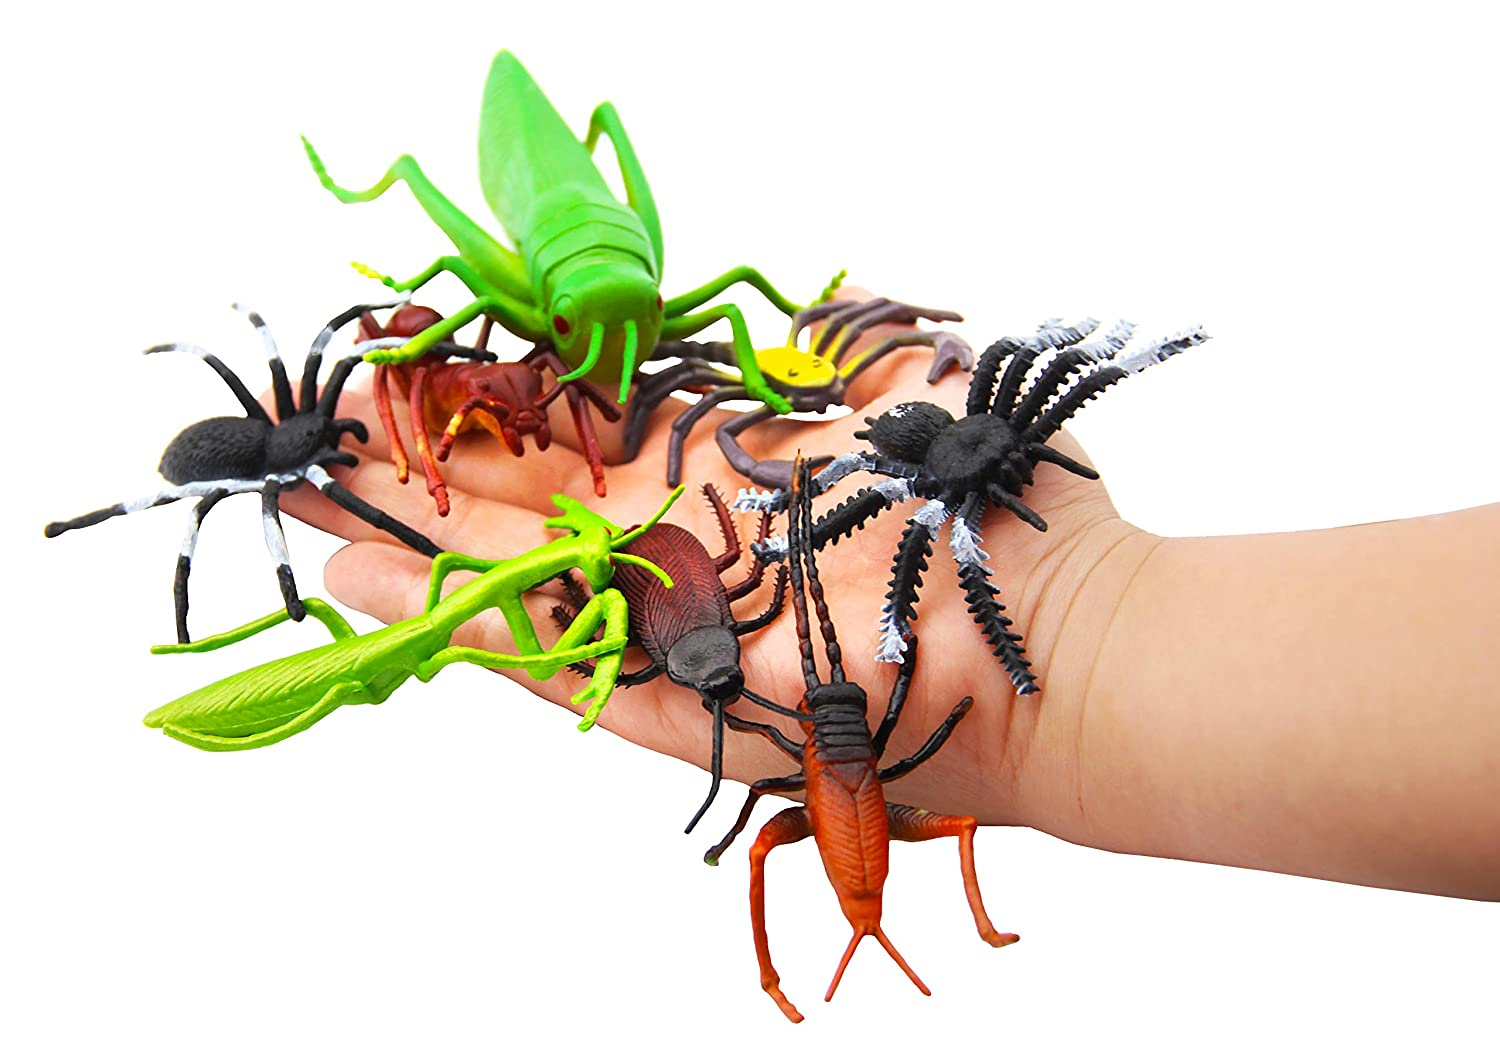 """Fake Spiders Butterflies and Worms for Education and Christmas Party Favors Pinowu 27pcs Bug Toy Figures Playset for Kids Boys Lady Bugs 2-6/"""" Fake Bug Insects Scorpions Crickets Cockroaches"""